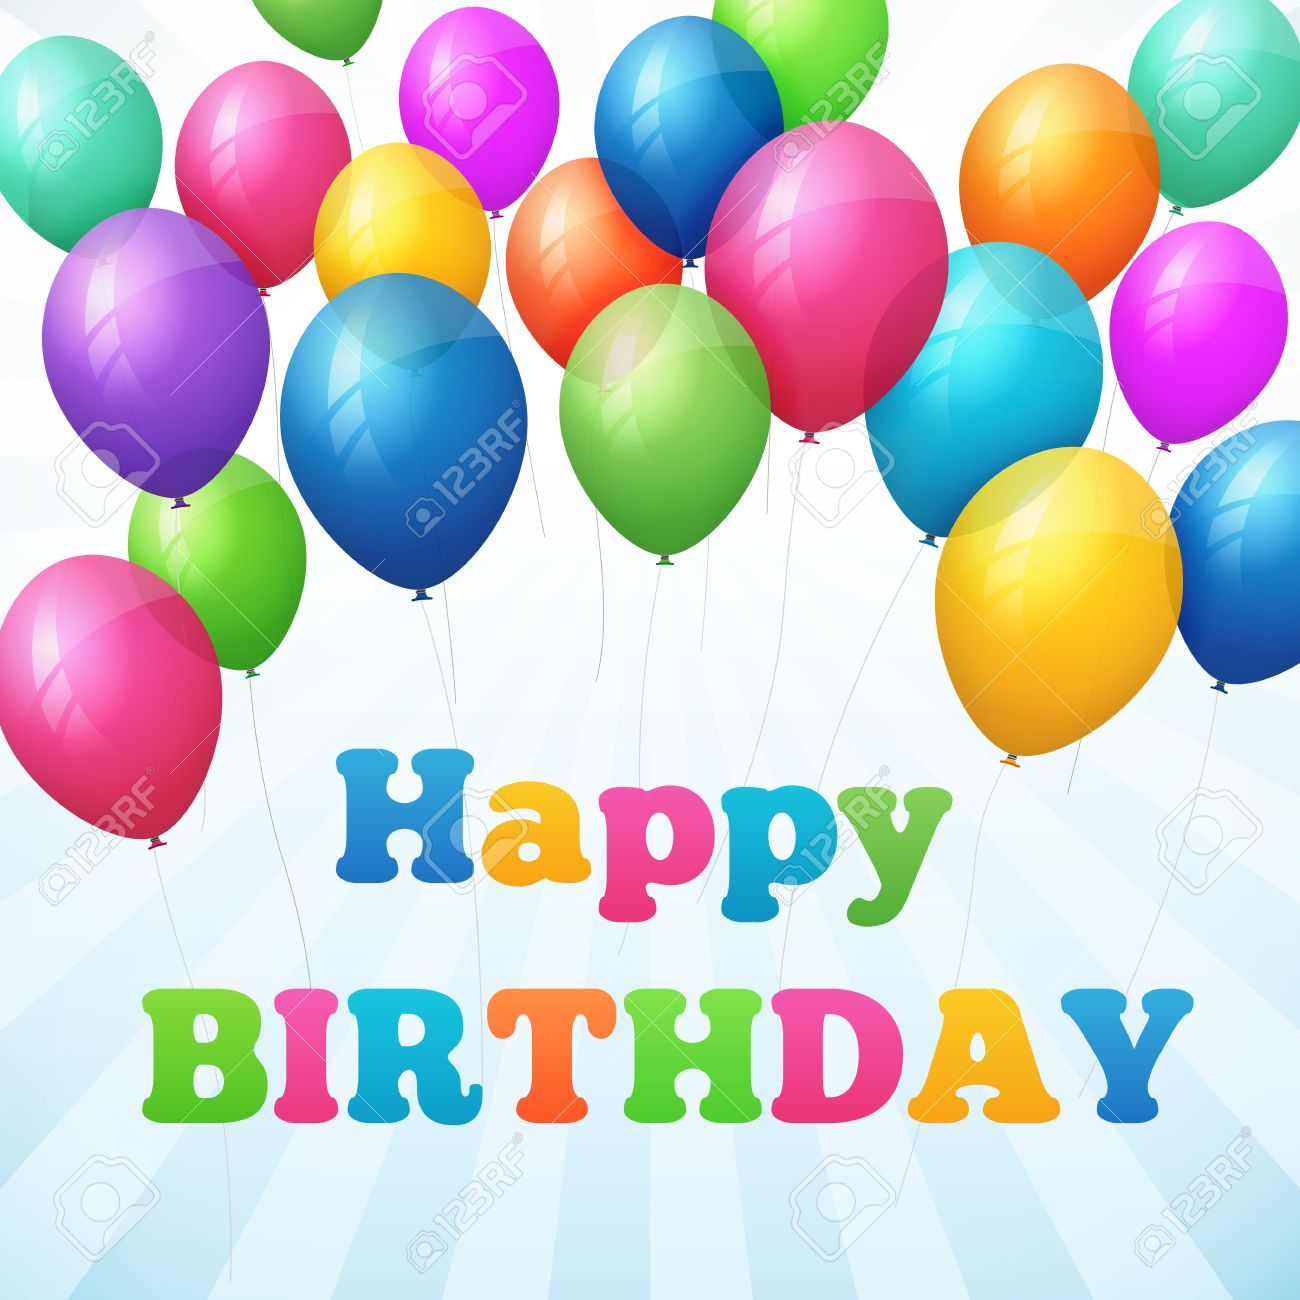 happy birthday poster images ; 30493785-happy-birthday-poster-with-colorful-balloons-isolated-from-background